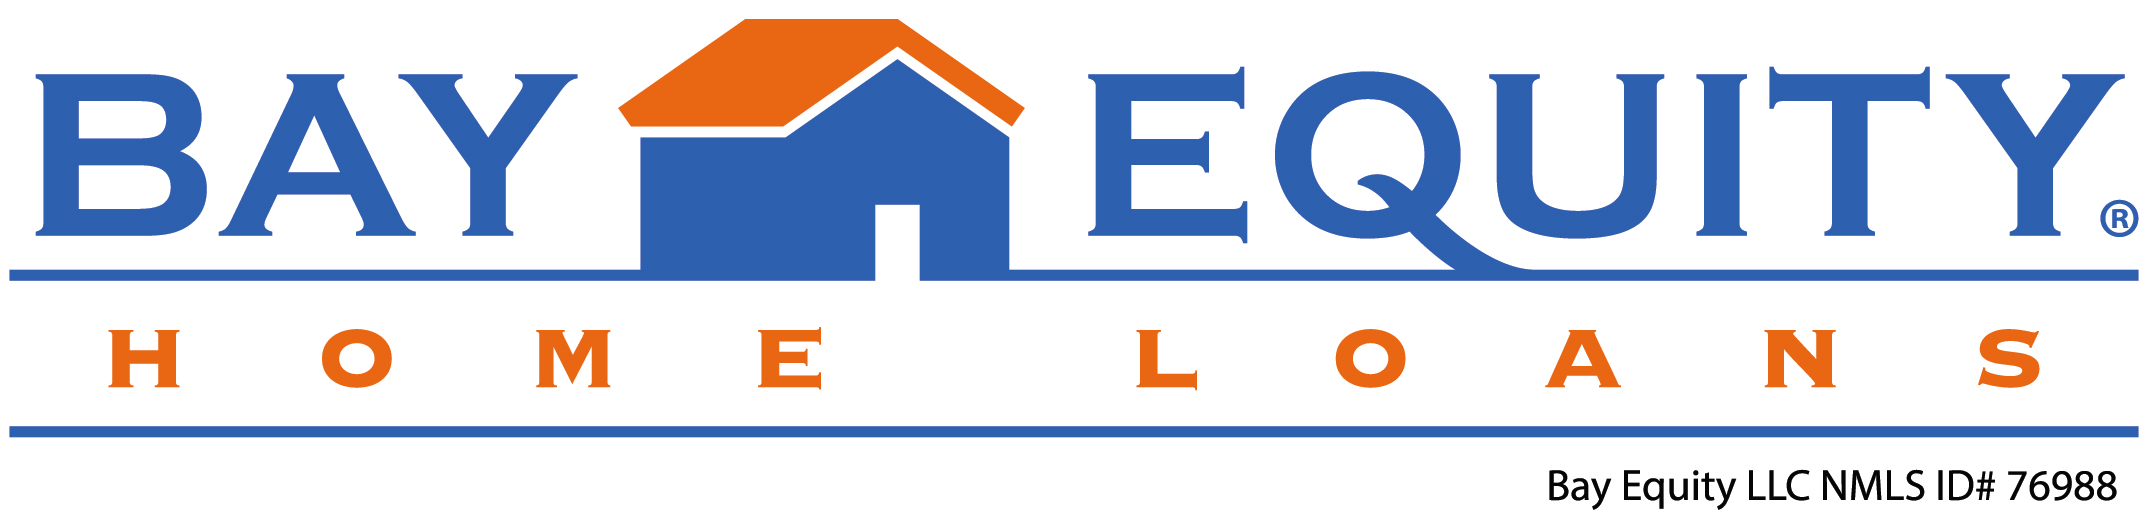 Bay-Equity-Home-Loans-logo